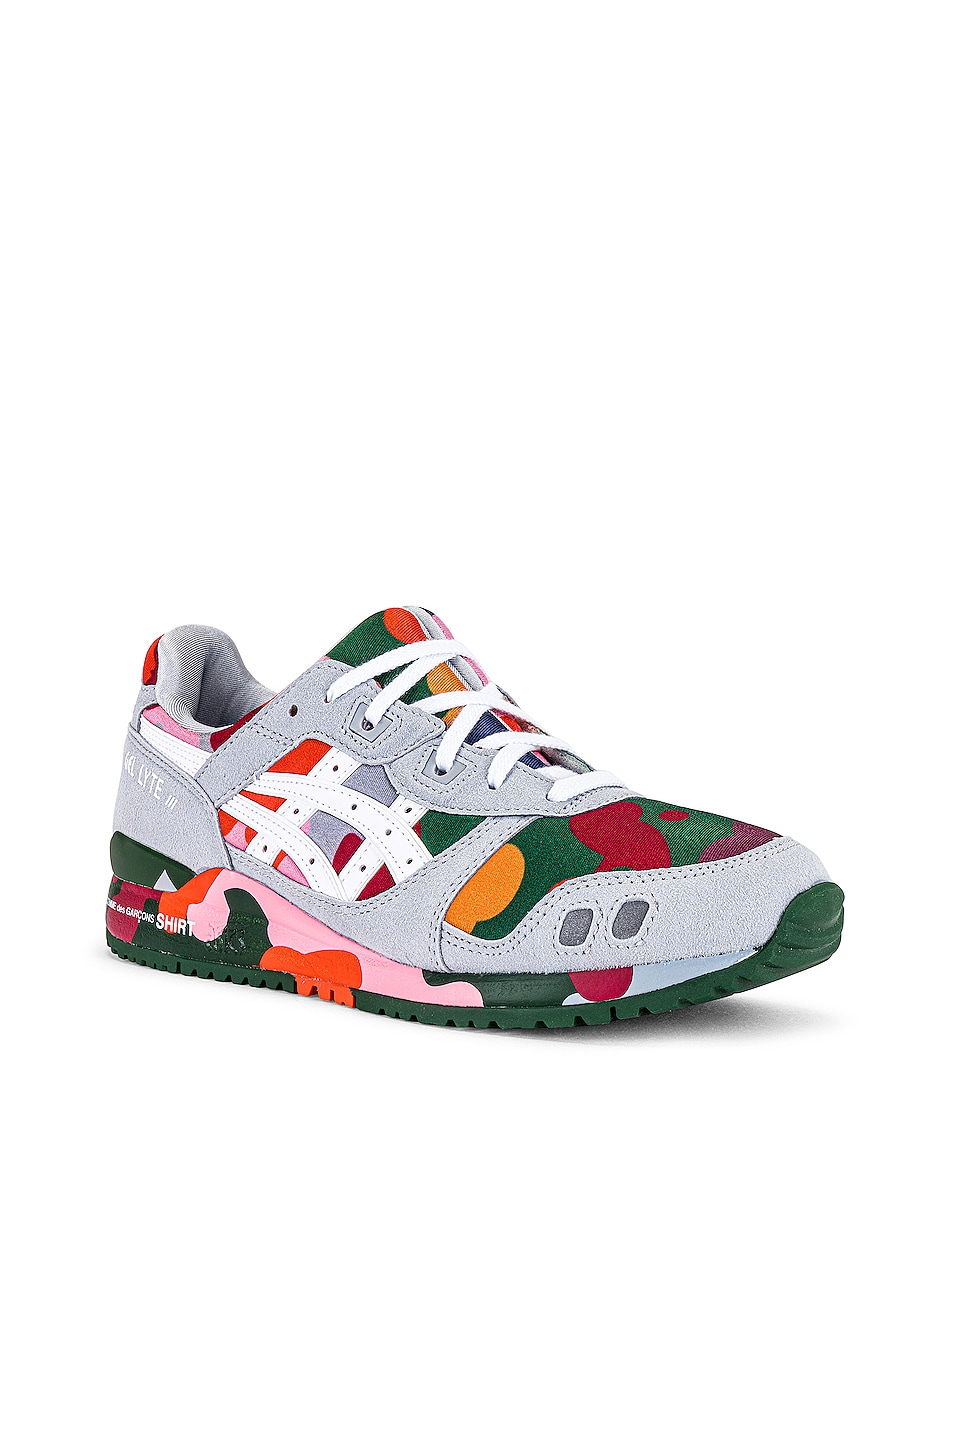 Image 1 of Comme Des Garcons SHIRT Asics Gel Lyte III Sneaker in Multi